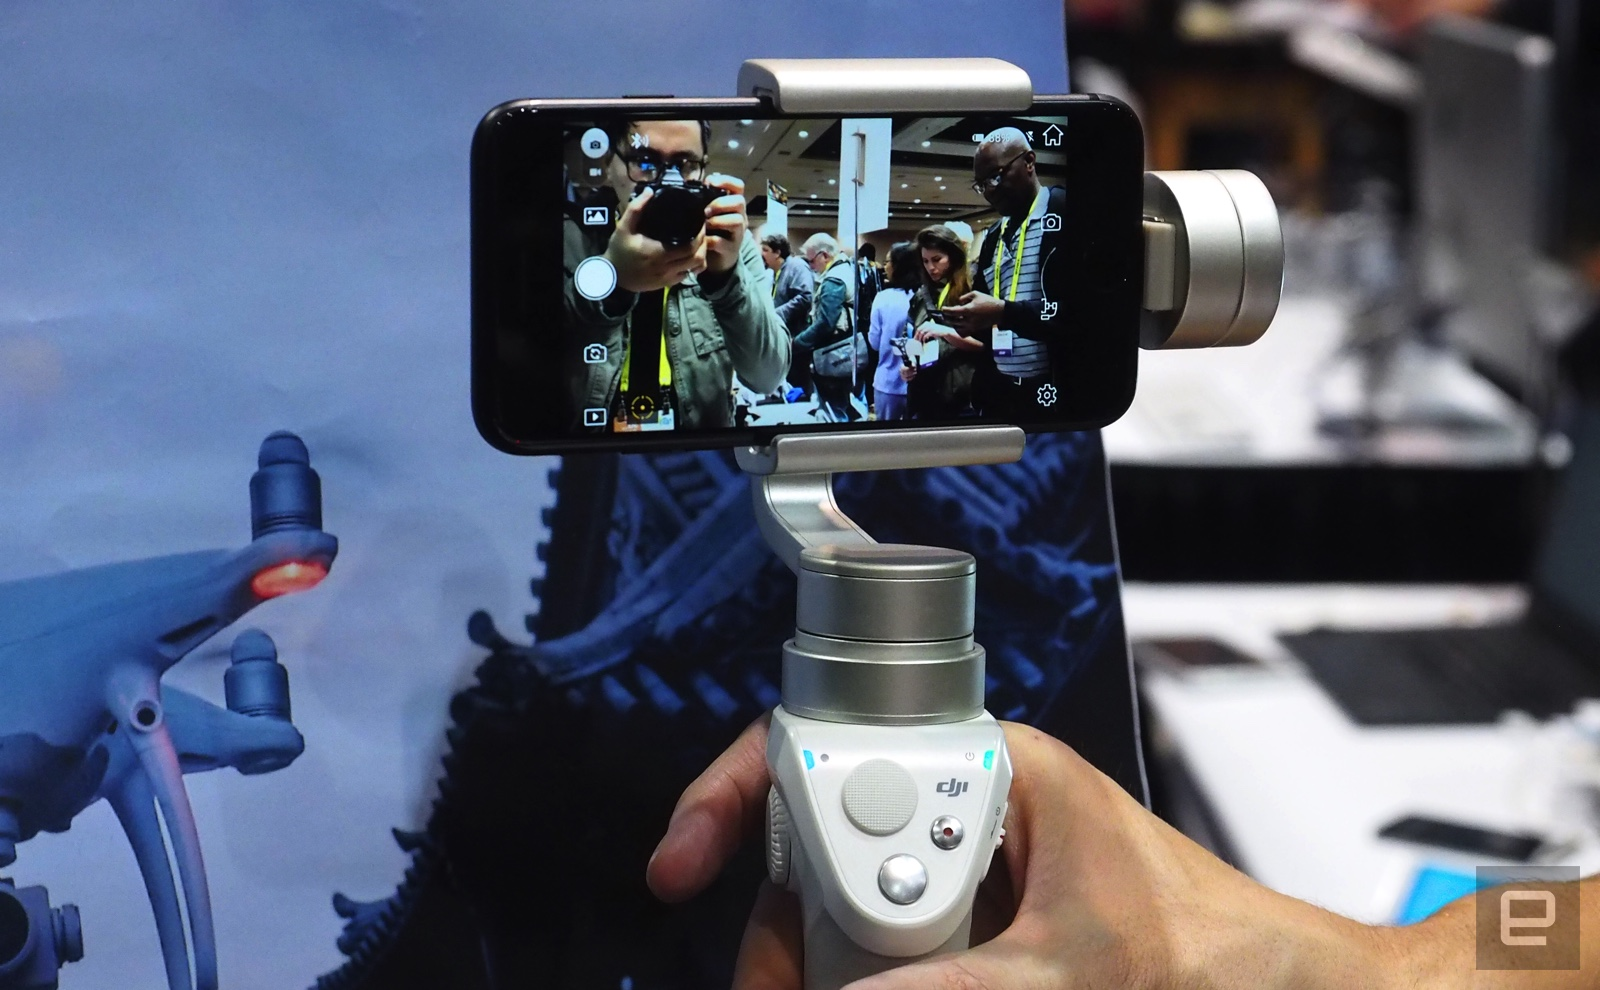 Dji Gives Its Osmo Mobile Stabilizer A Fresh Silver Look Free Base